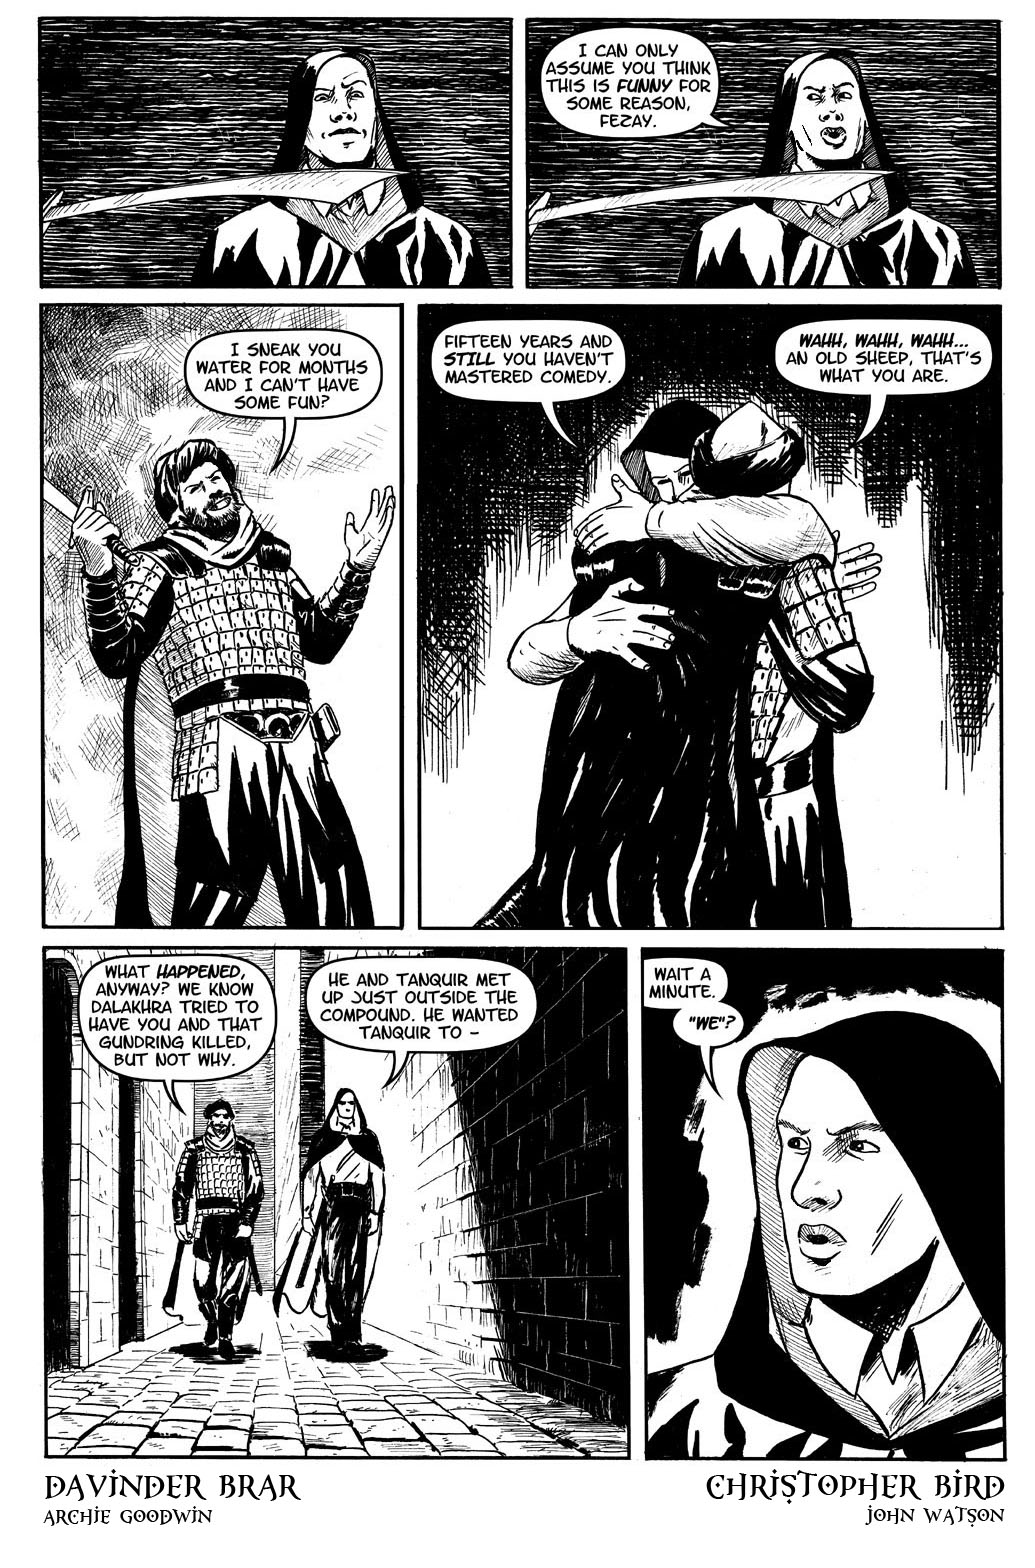 Book 4, page 3